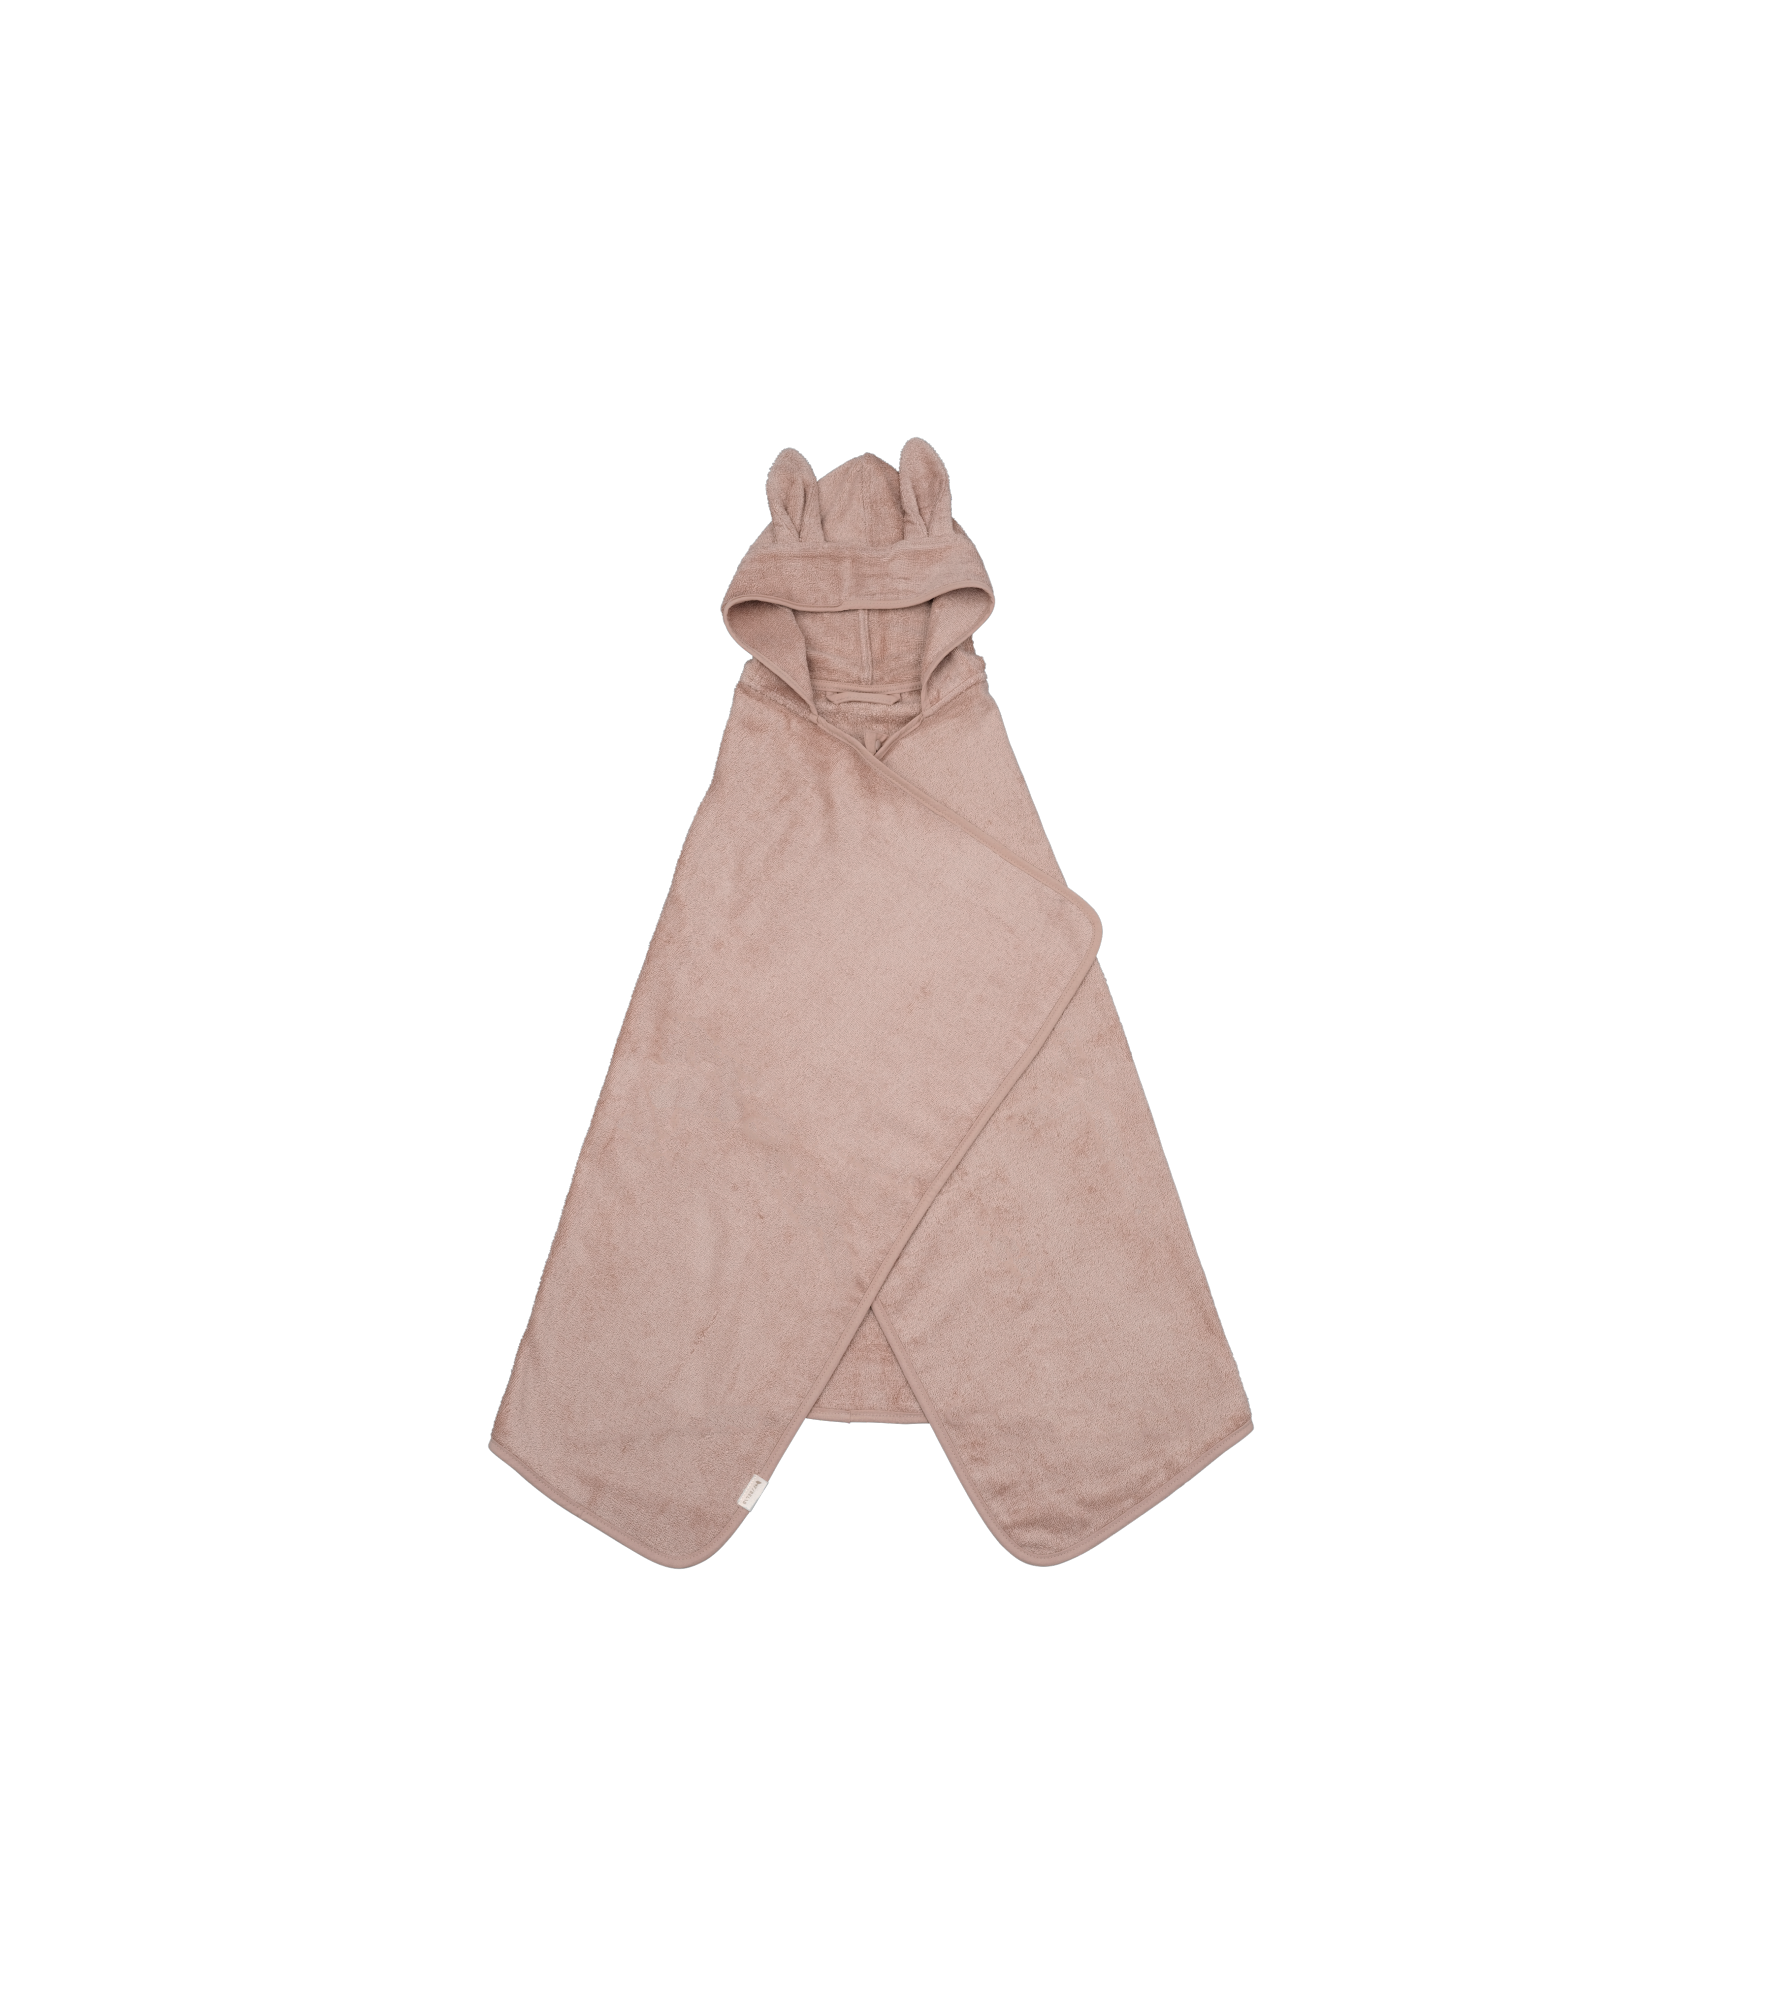 Hooded Junior Towel - Bunny - Old Rose (primary)_edit.png